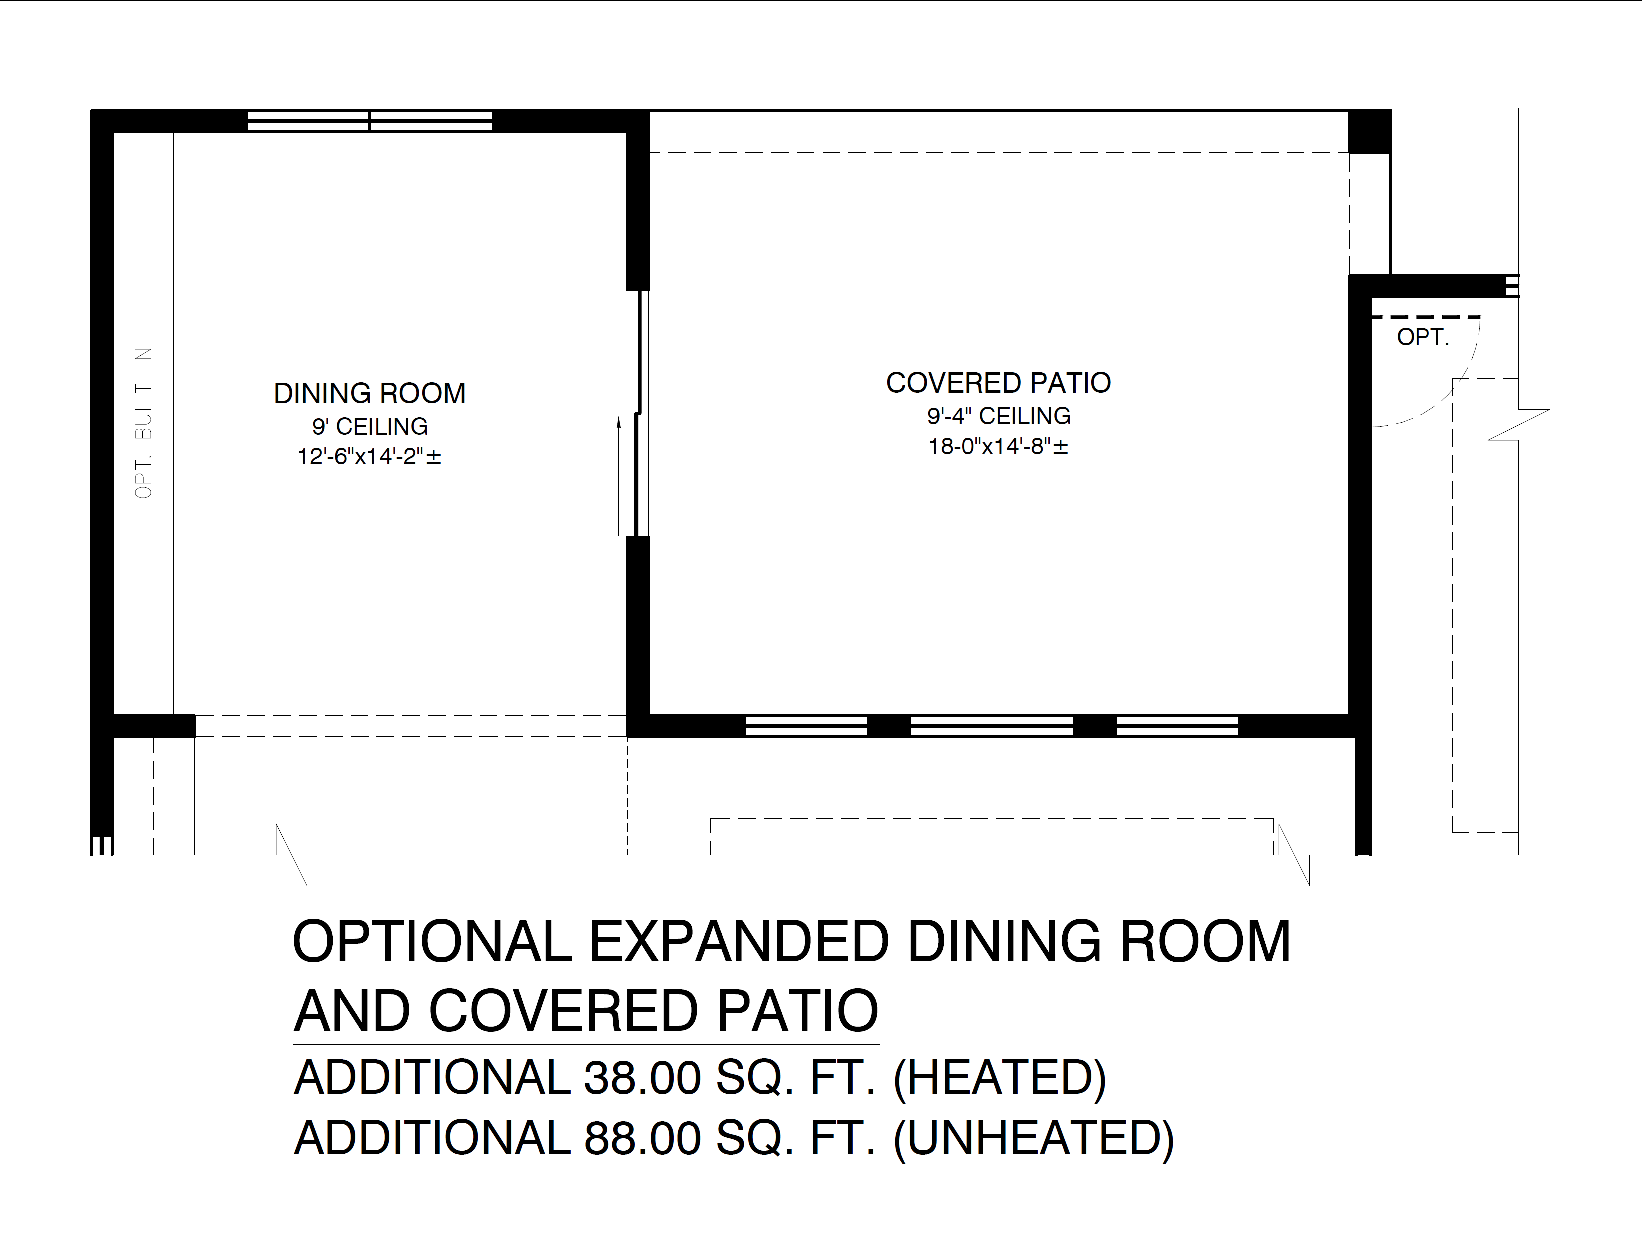 Optional Expanded Dining Room and Covered Patio